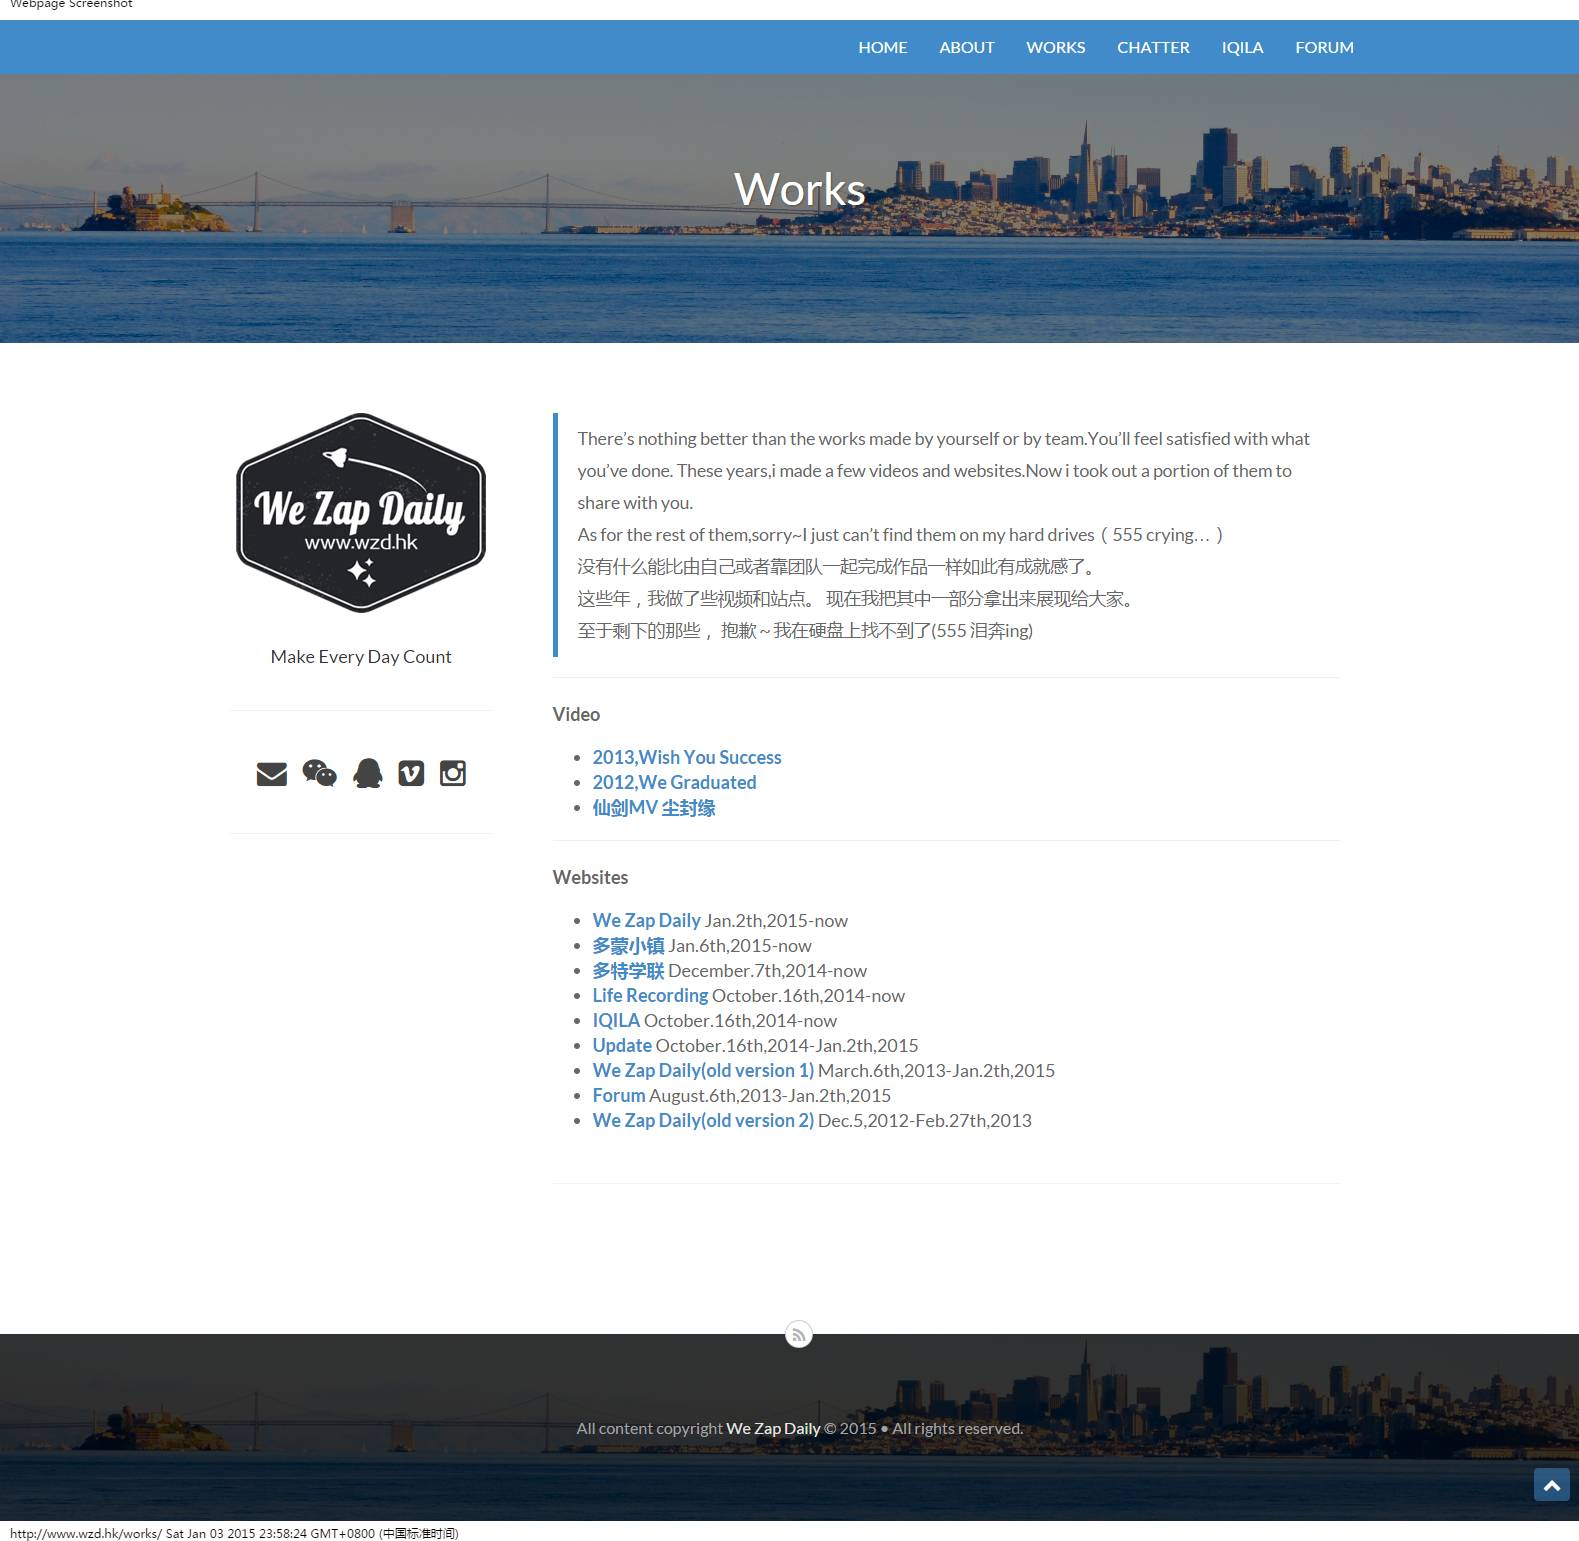 The Screenshot of Works Page